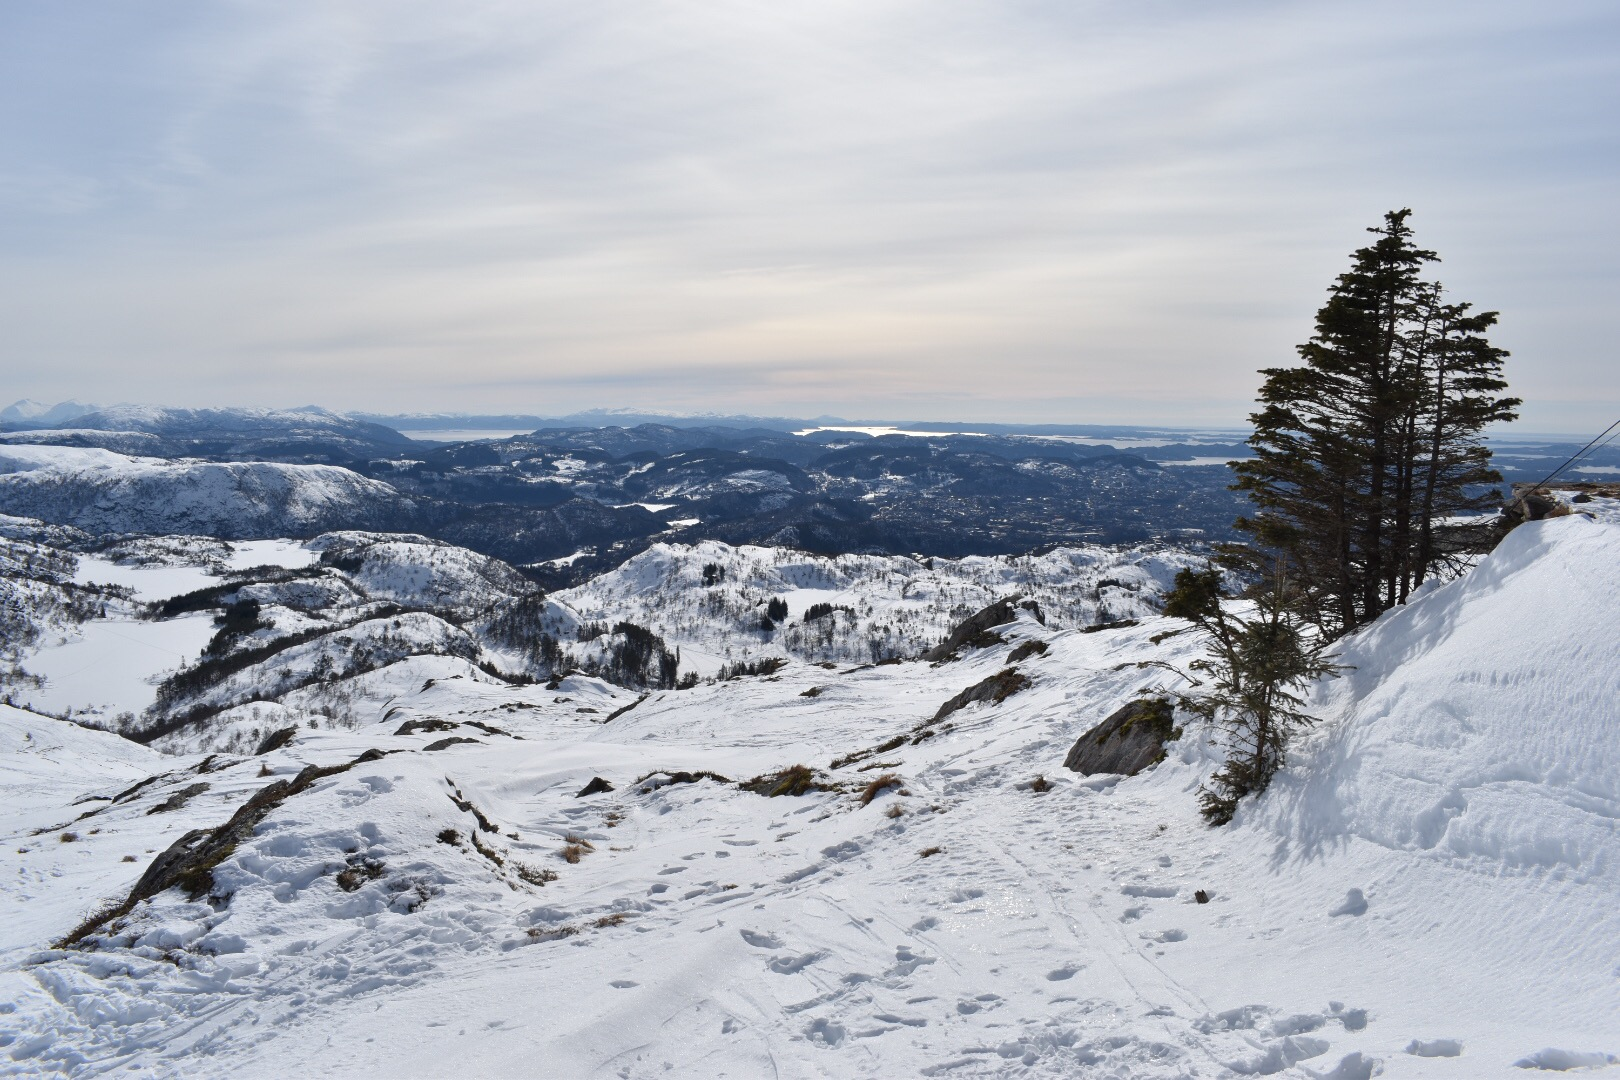 Distant Fjords and Trees on Top of Mount Ulriken in Bergen, Norway